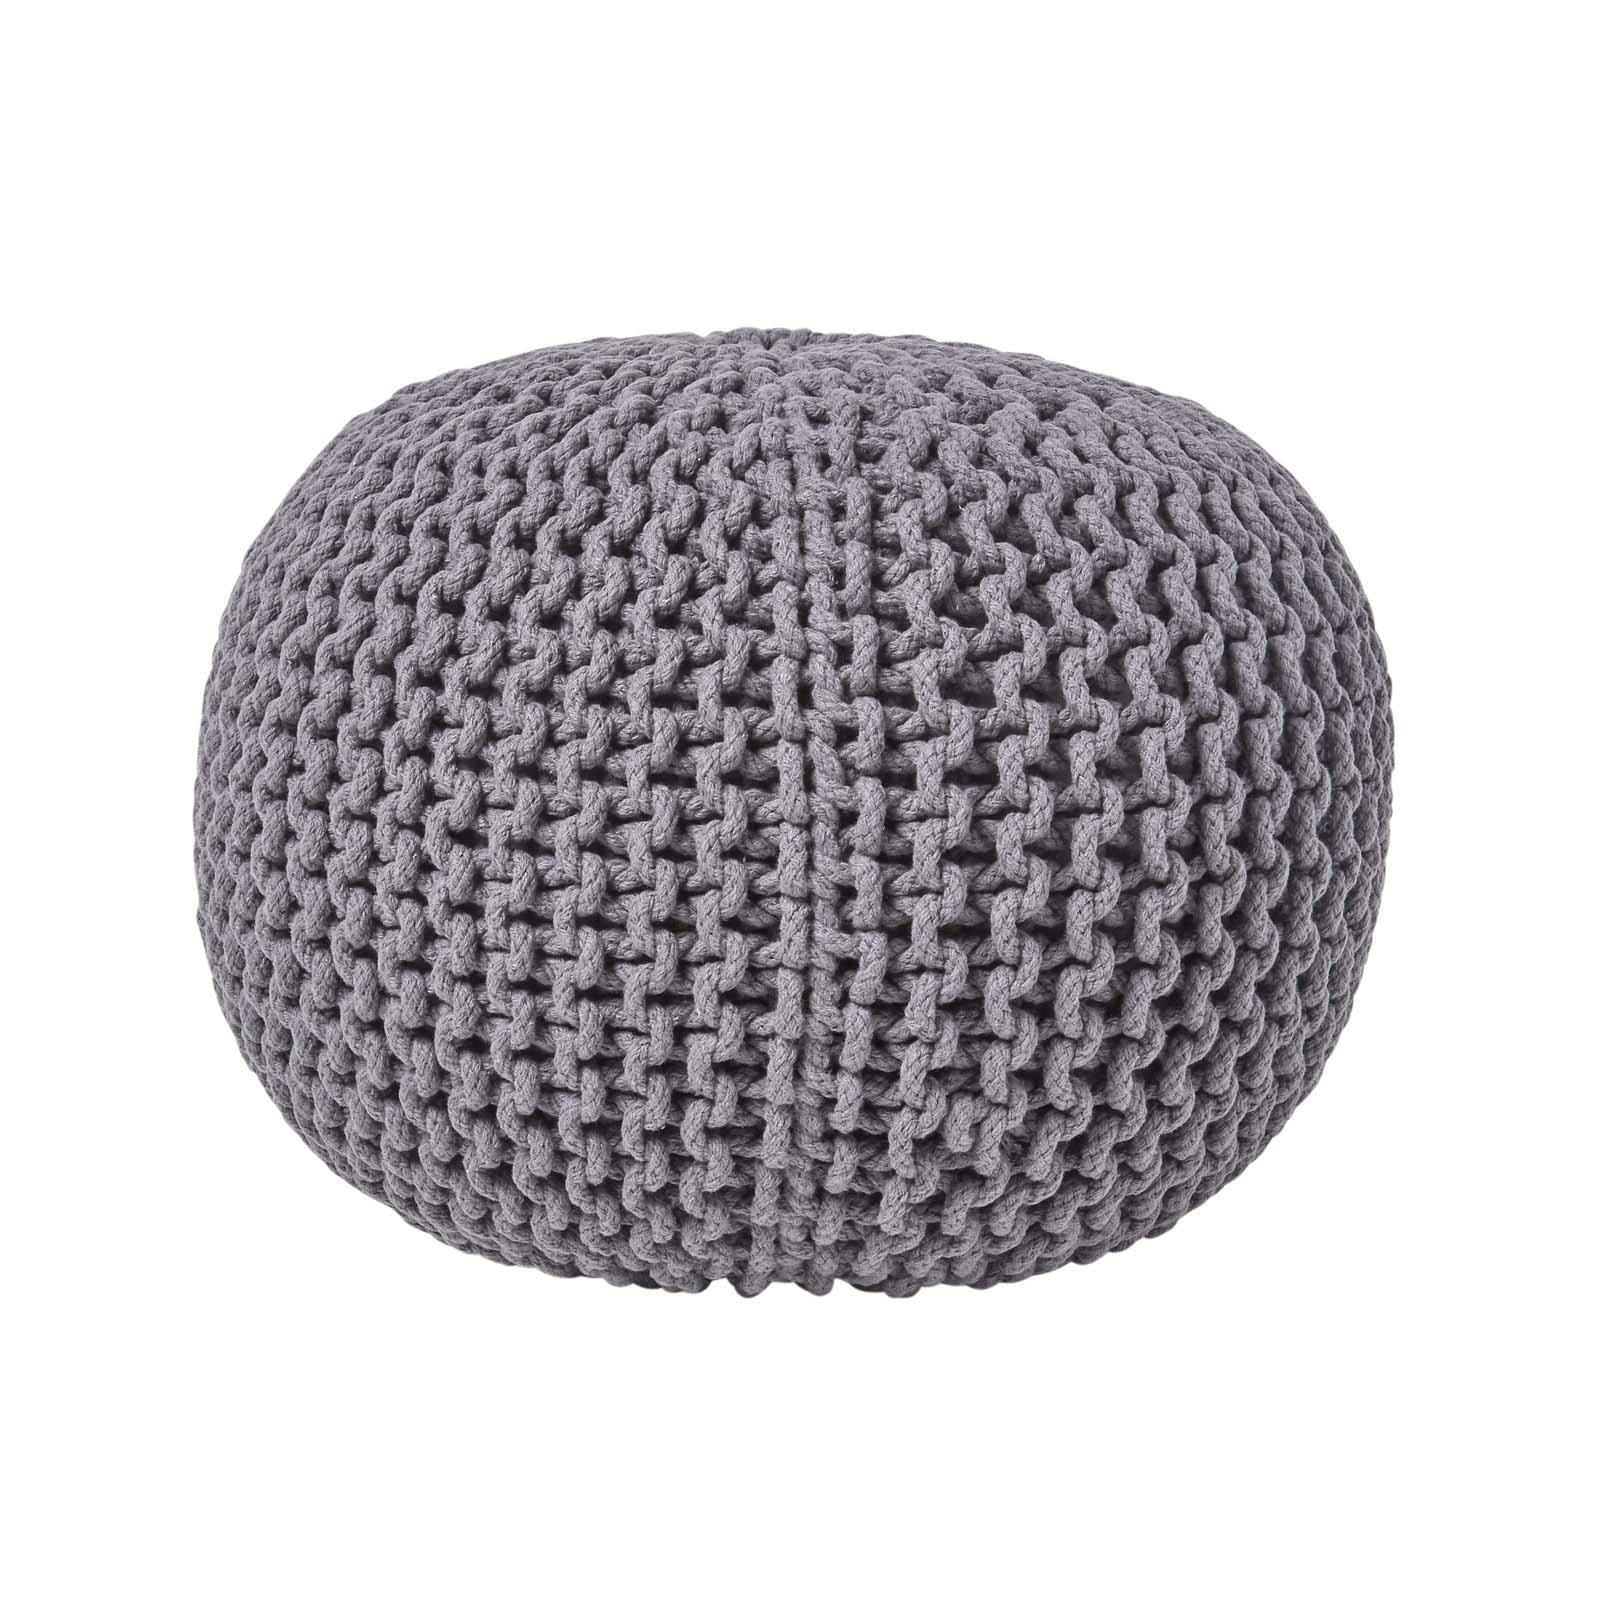 Hand-Knitted-100-Cotton-Pouffes-Round-Sphere-Or-Cube-Square-Chunky-Footstools thumbnail 51